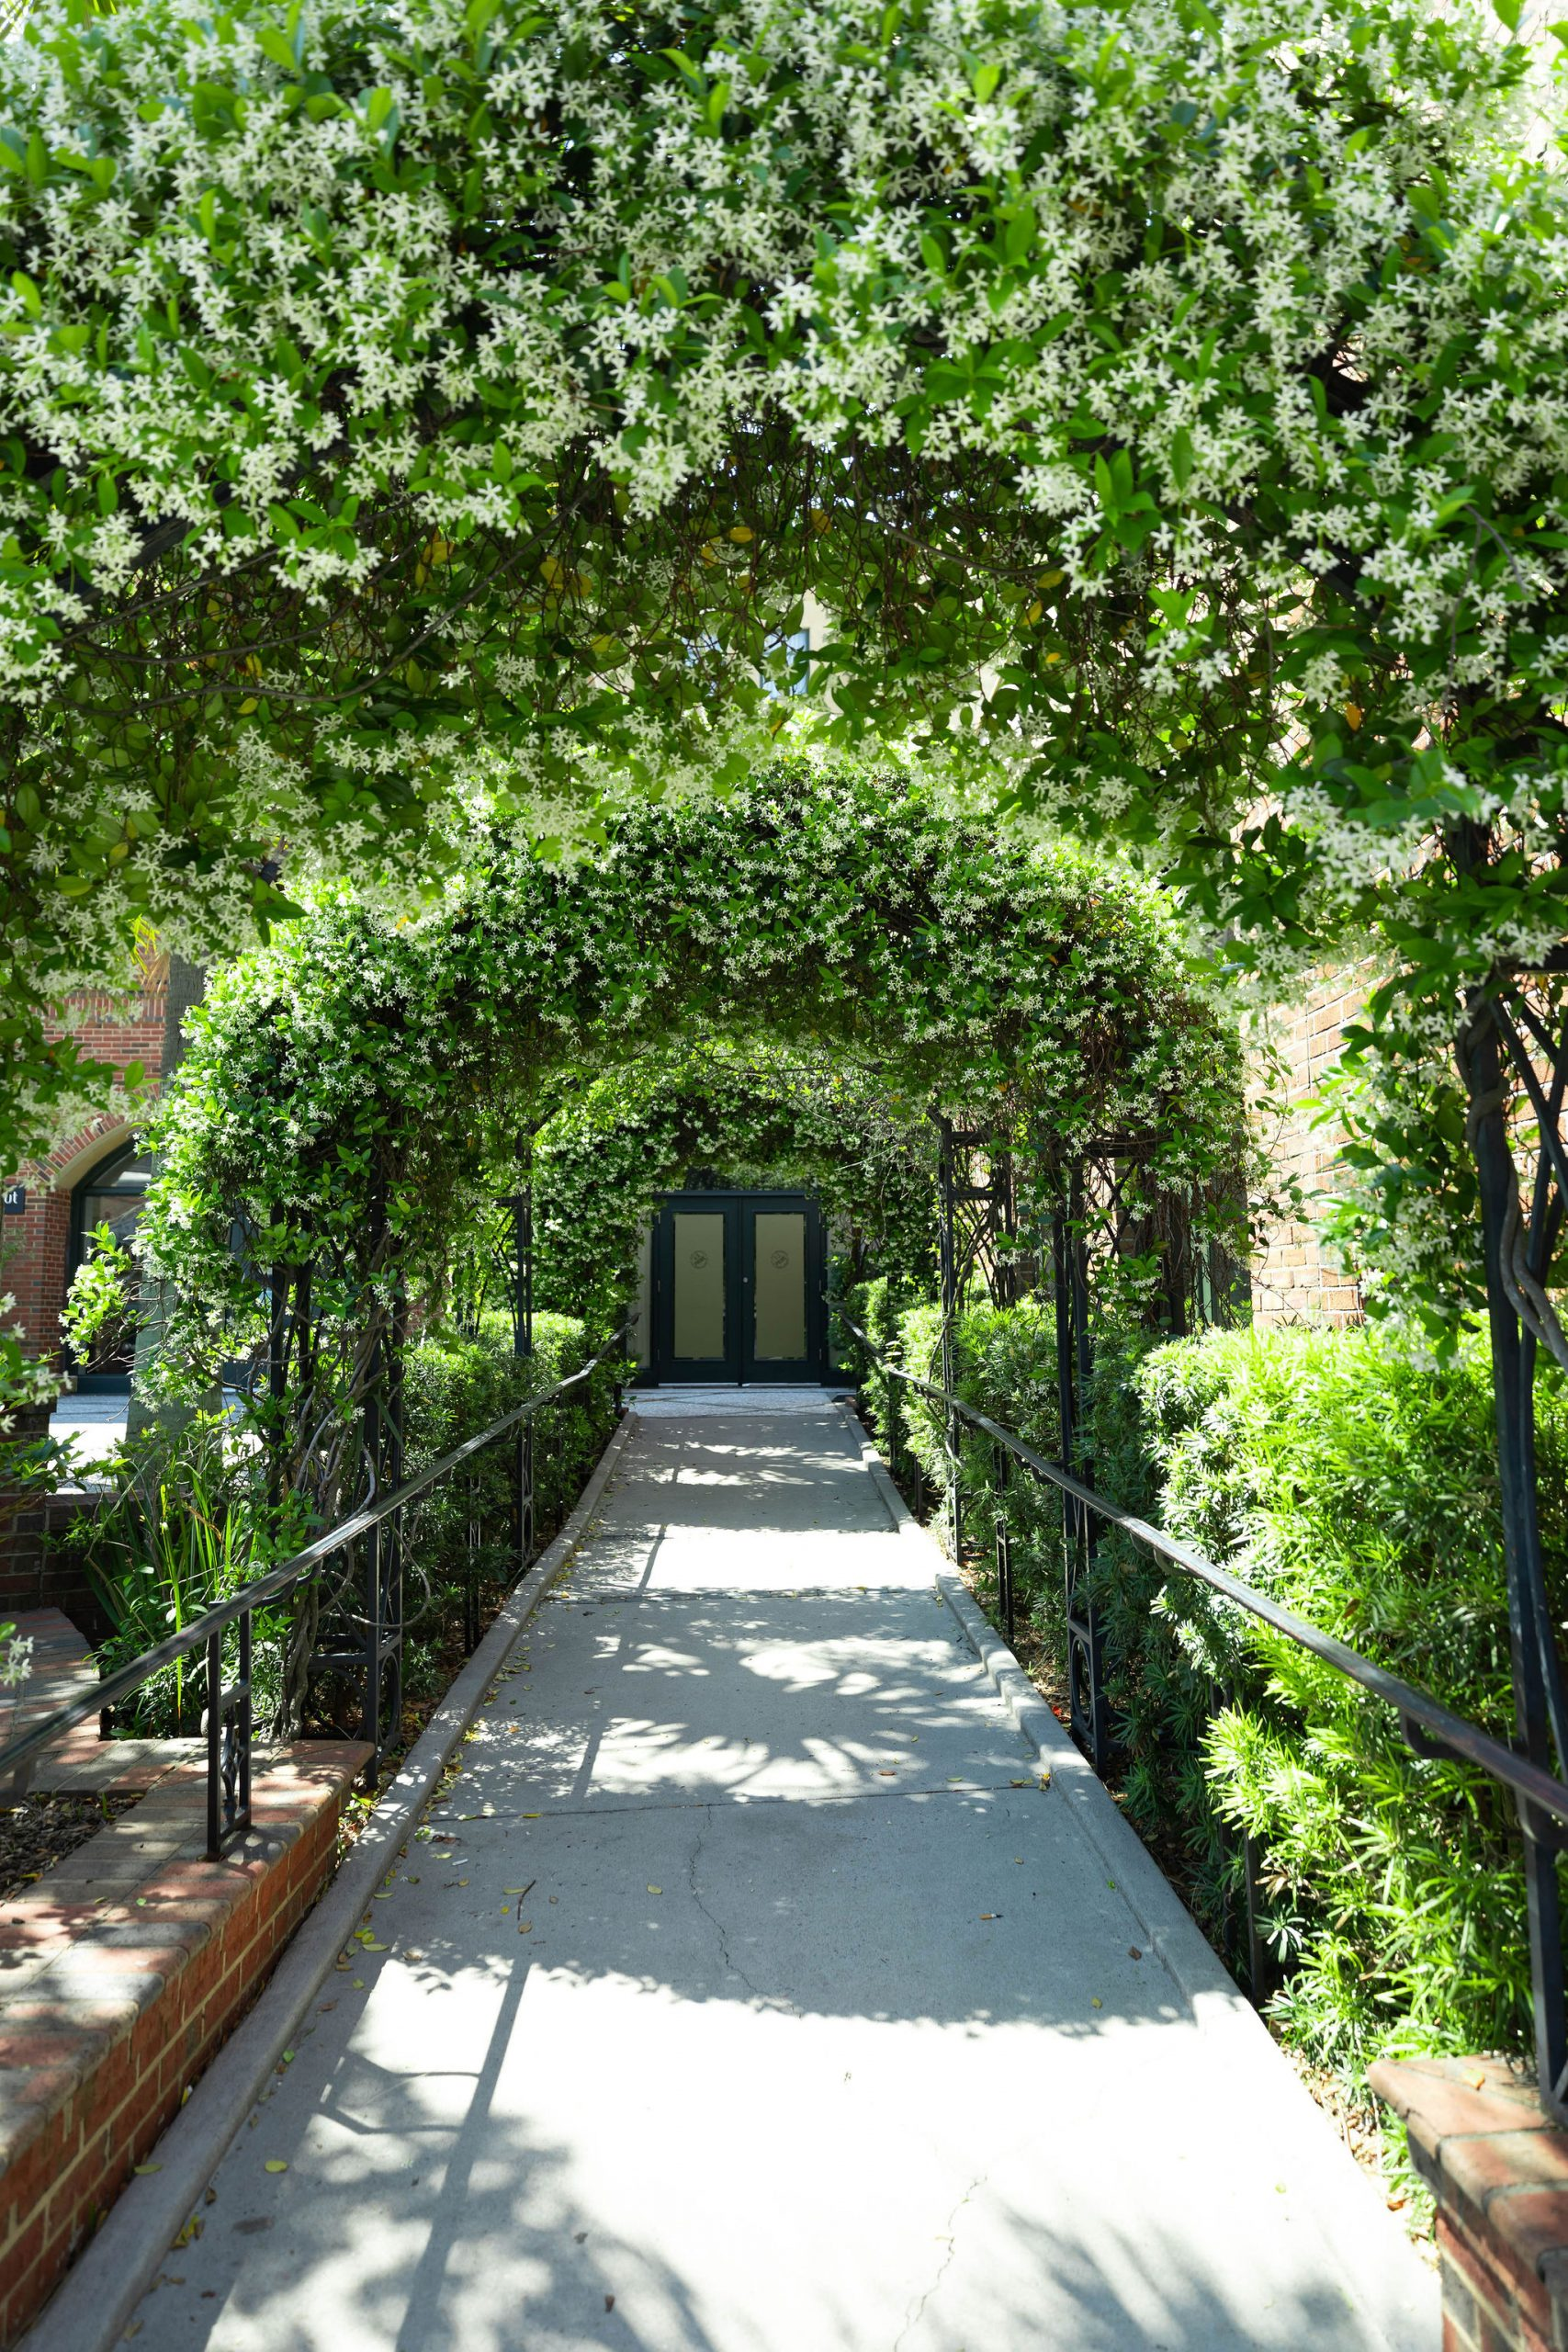 Blooming Jasmine Arches Architecture of The Holy City Charleston Luxury Travel Guide by Photographer Annie Fairfax South Carolina Vacation Ideas and Honeymoon Inspiration